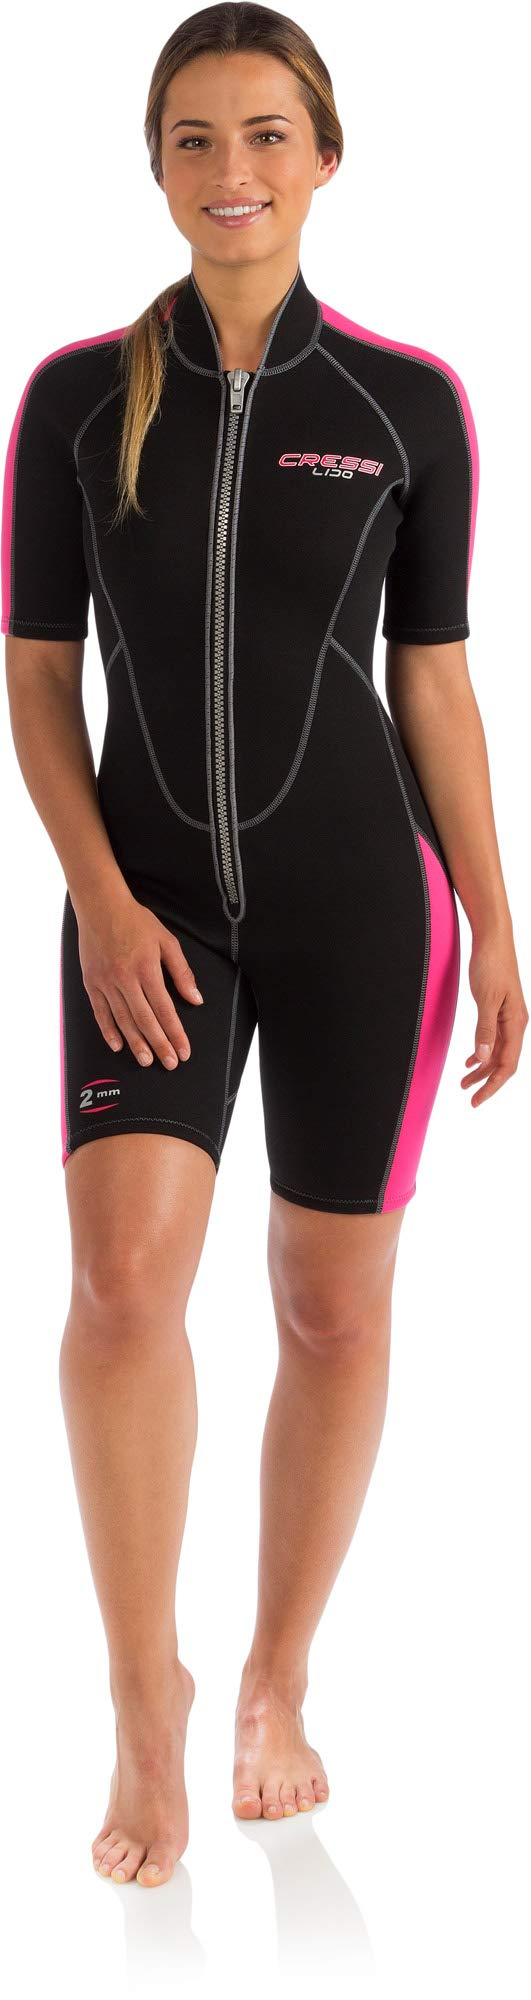 Cressi Lido 2mm Lady, Black/Pink, 4/L by Cressi